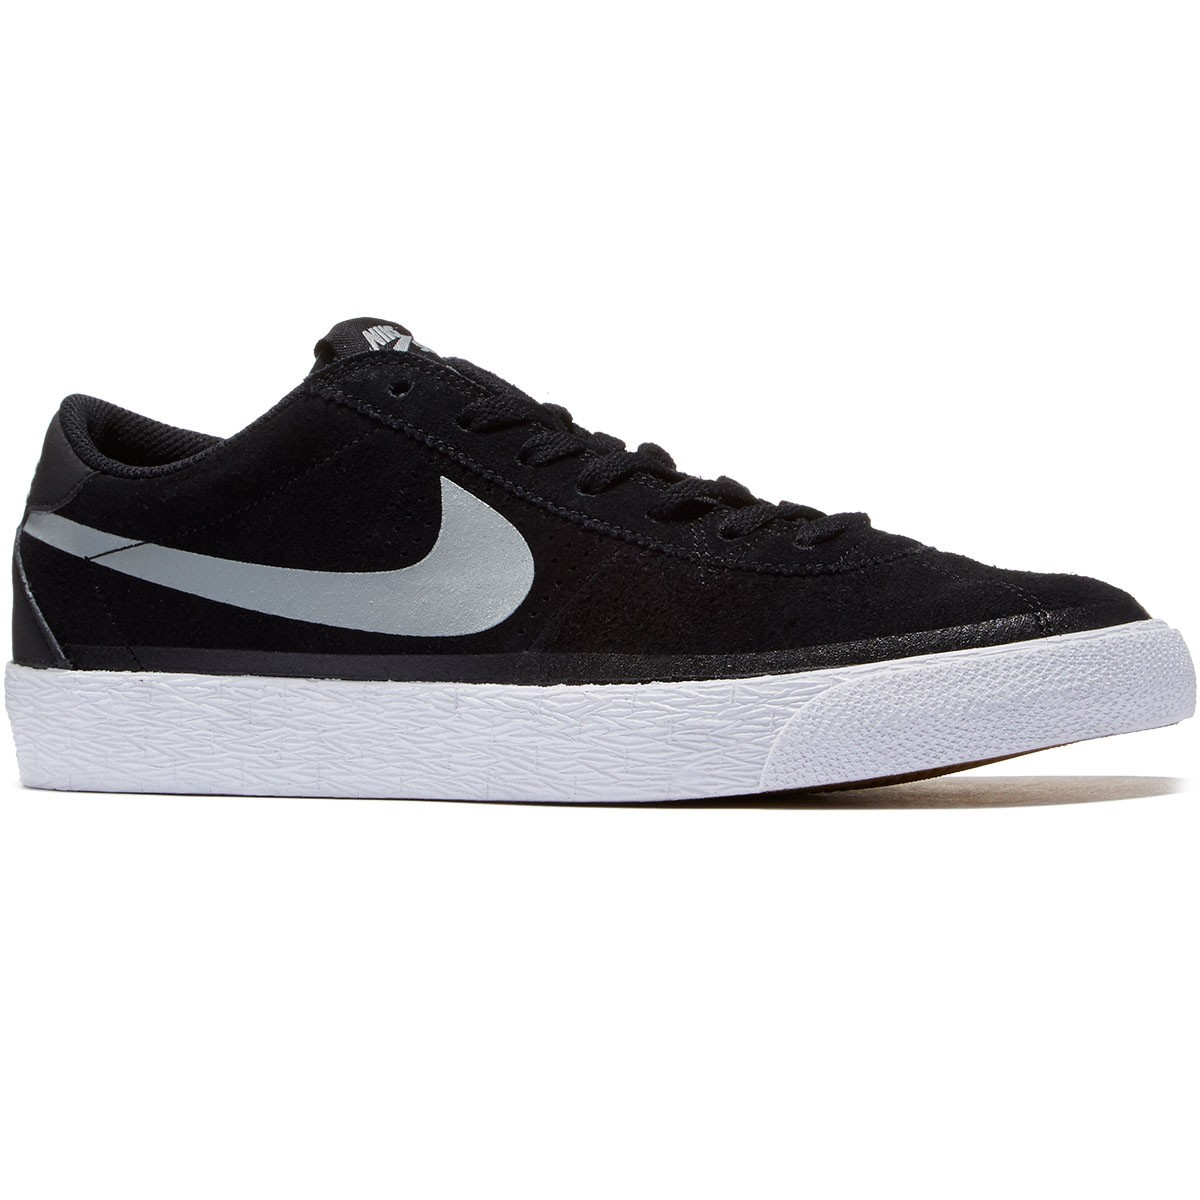 Nike Bruin SB Premium SE Shoes - Black/Base Grey/White - 10.0